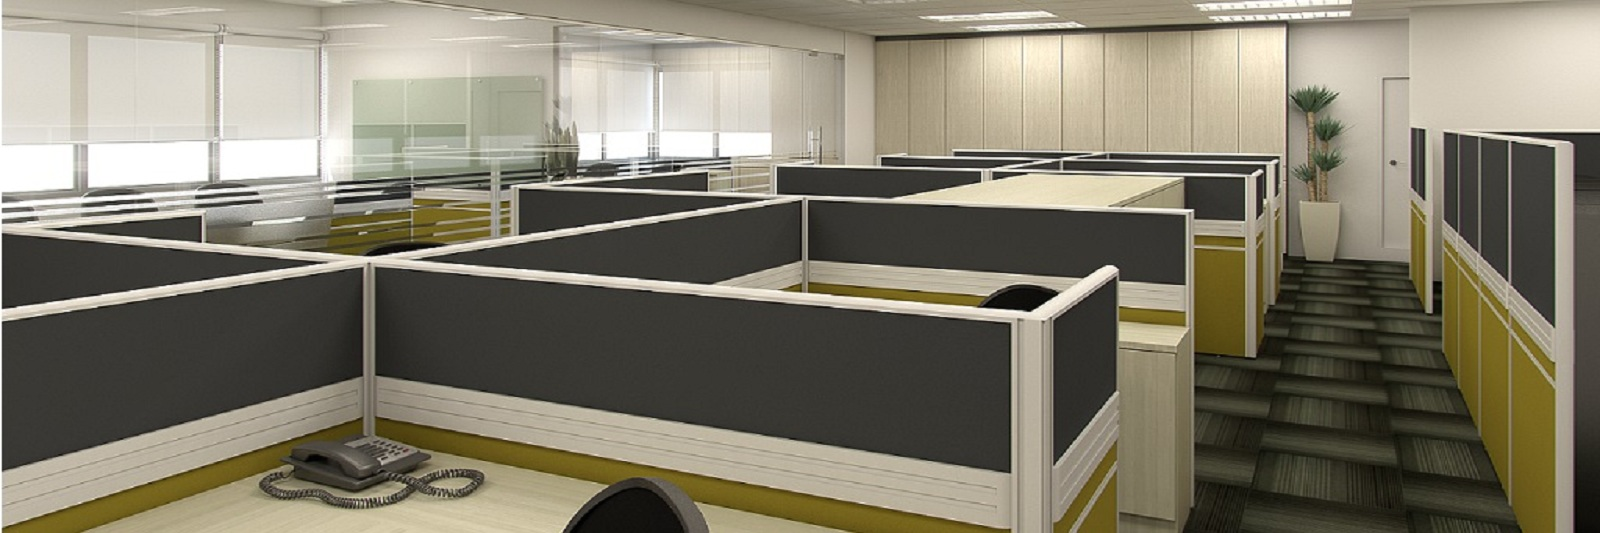 Office Remodeling Services In New Jersey Moshe General Construction